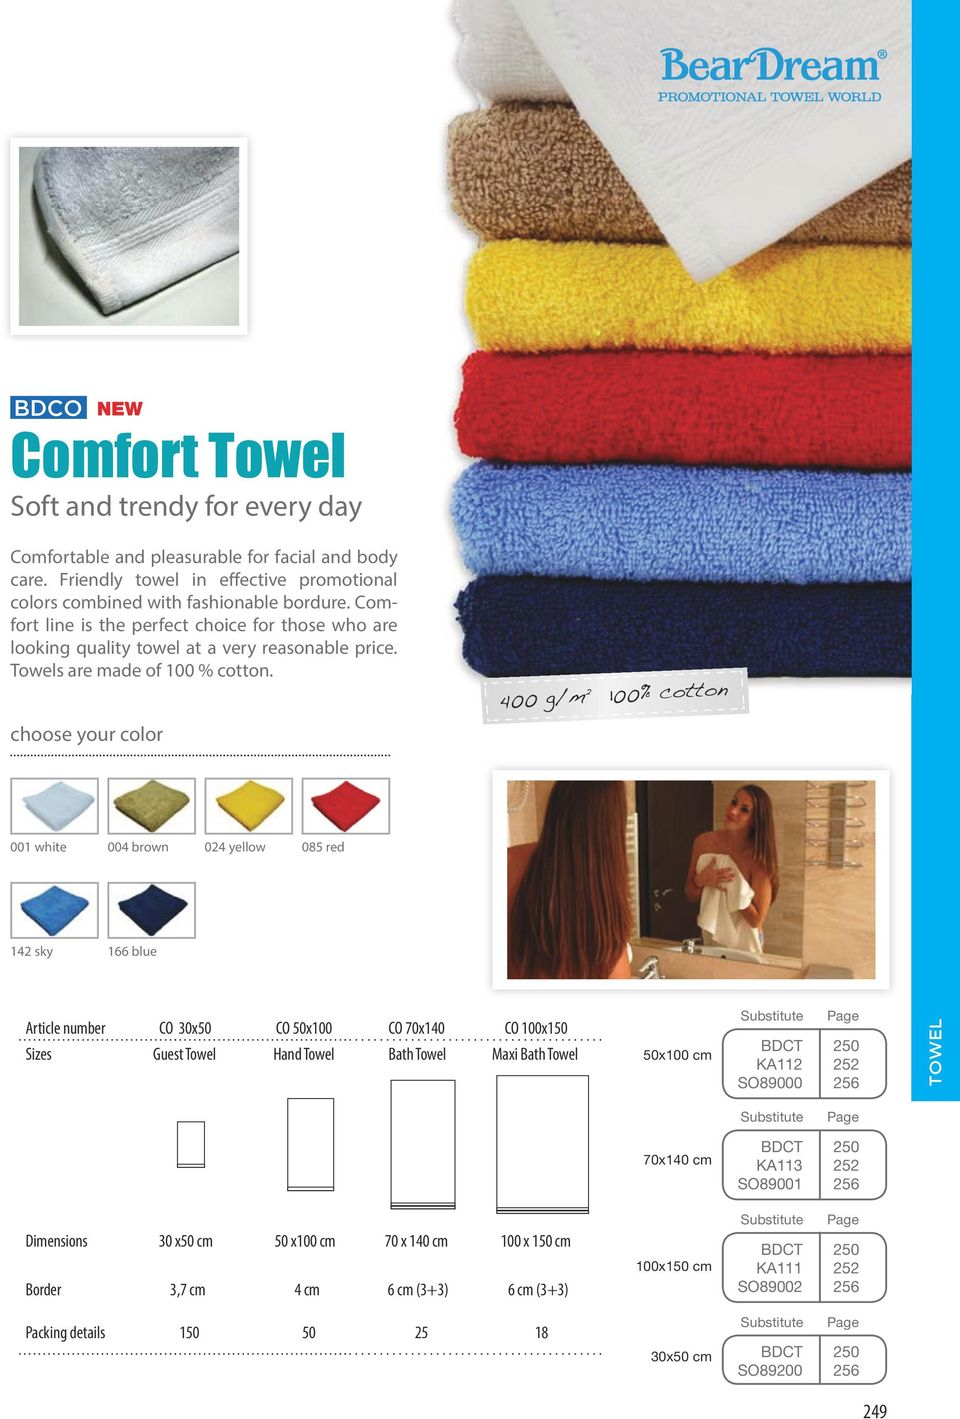 choose your color 400 g/m 2 100% cotton 001 white 004 brown 024 yellow 085 red 142 sky 166 blue Article number CO 30x50 CO 50x100 CO 70x140 CO 100x150 Sizes Guest Towel Hand Towel Bath Towel